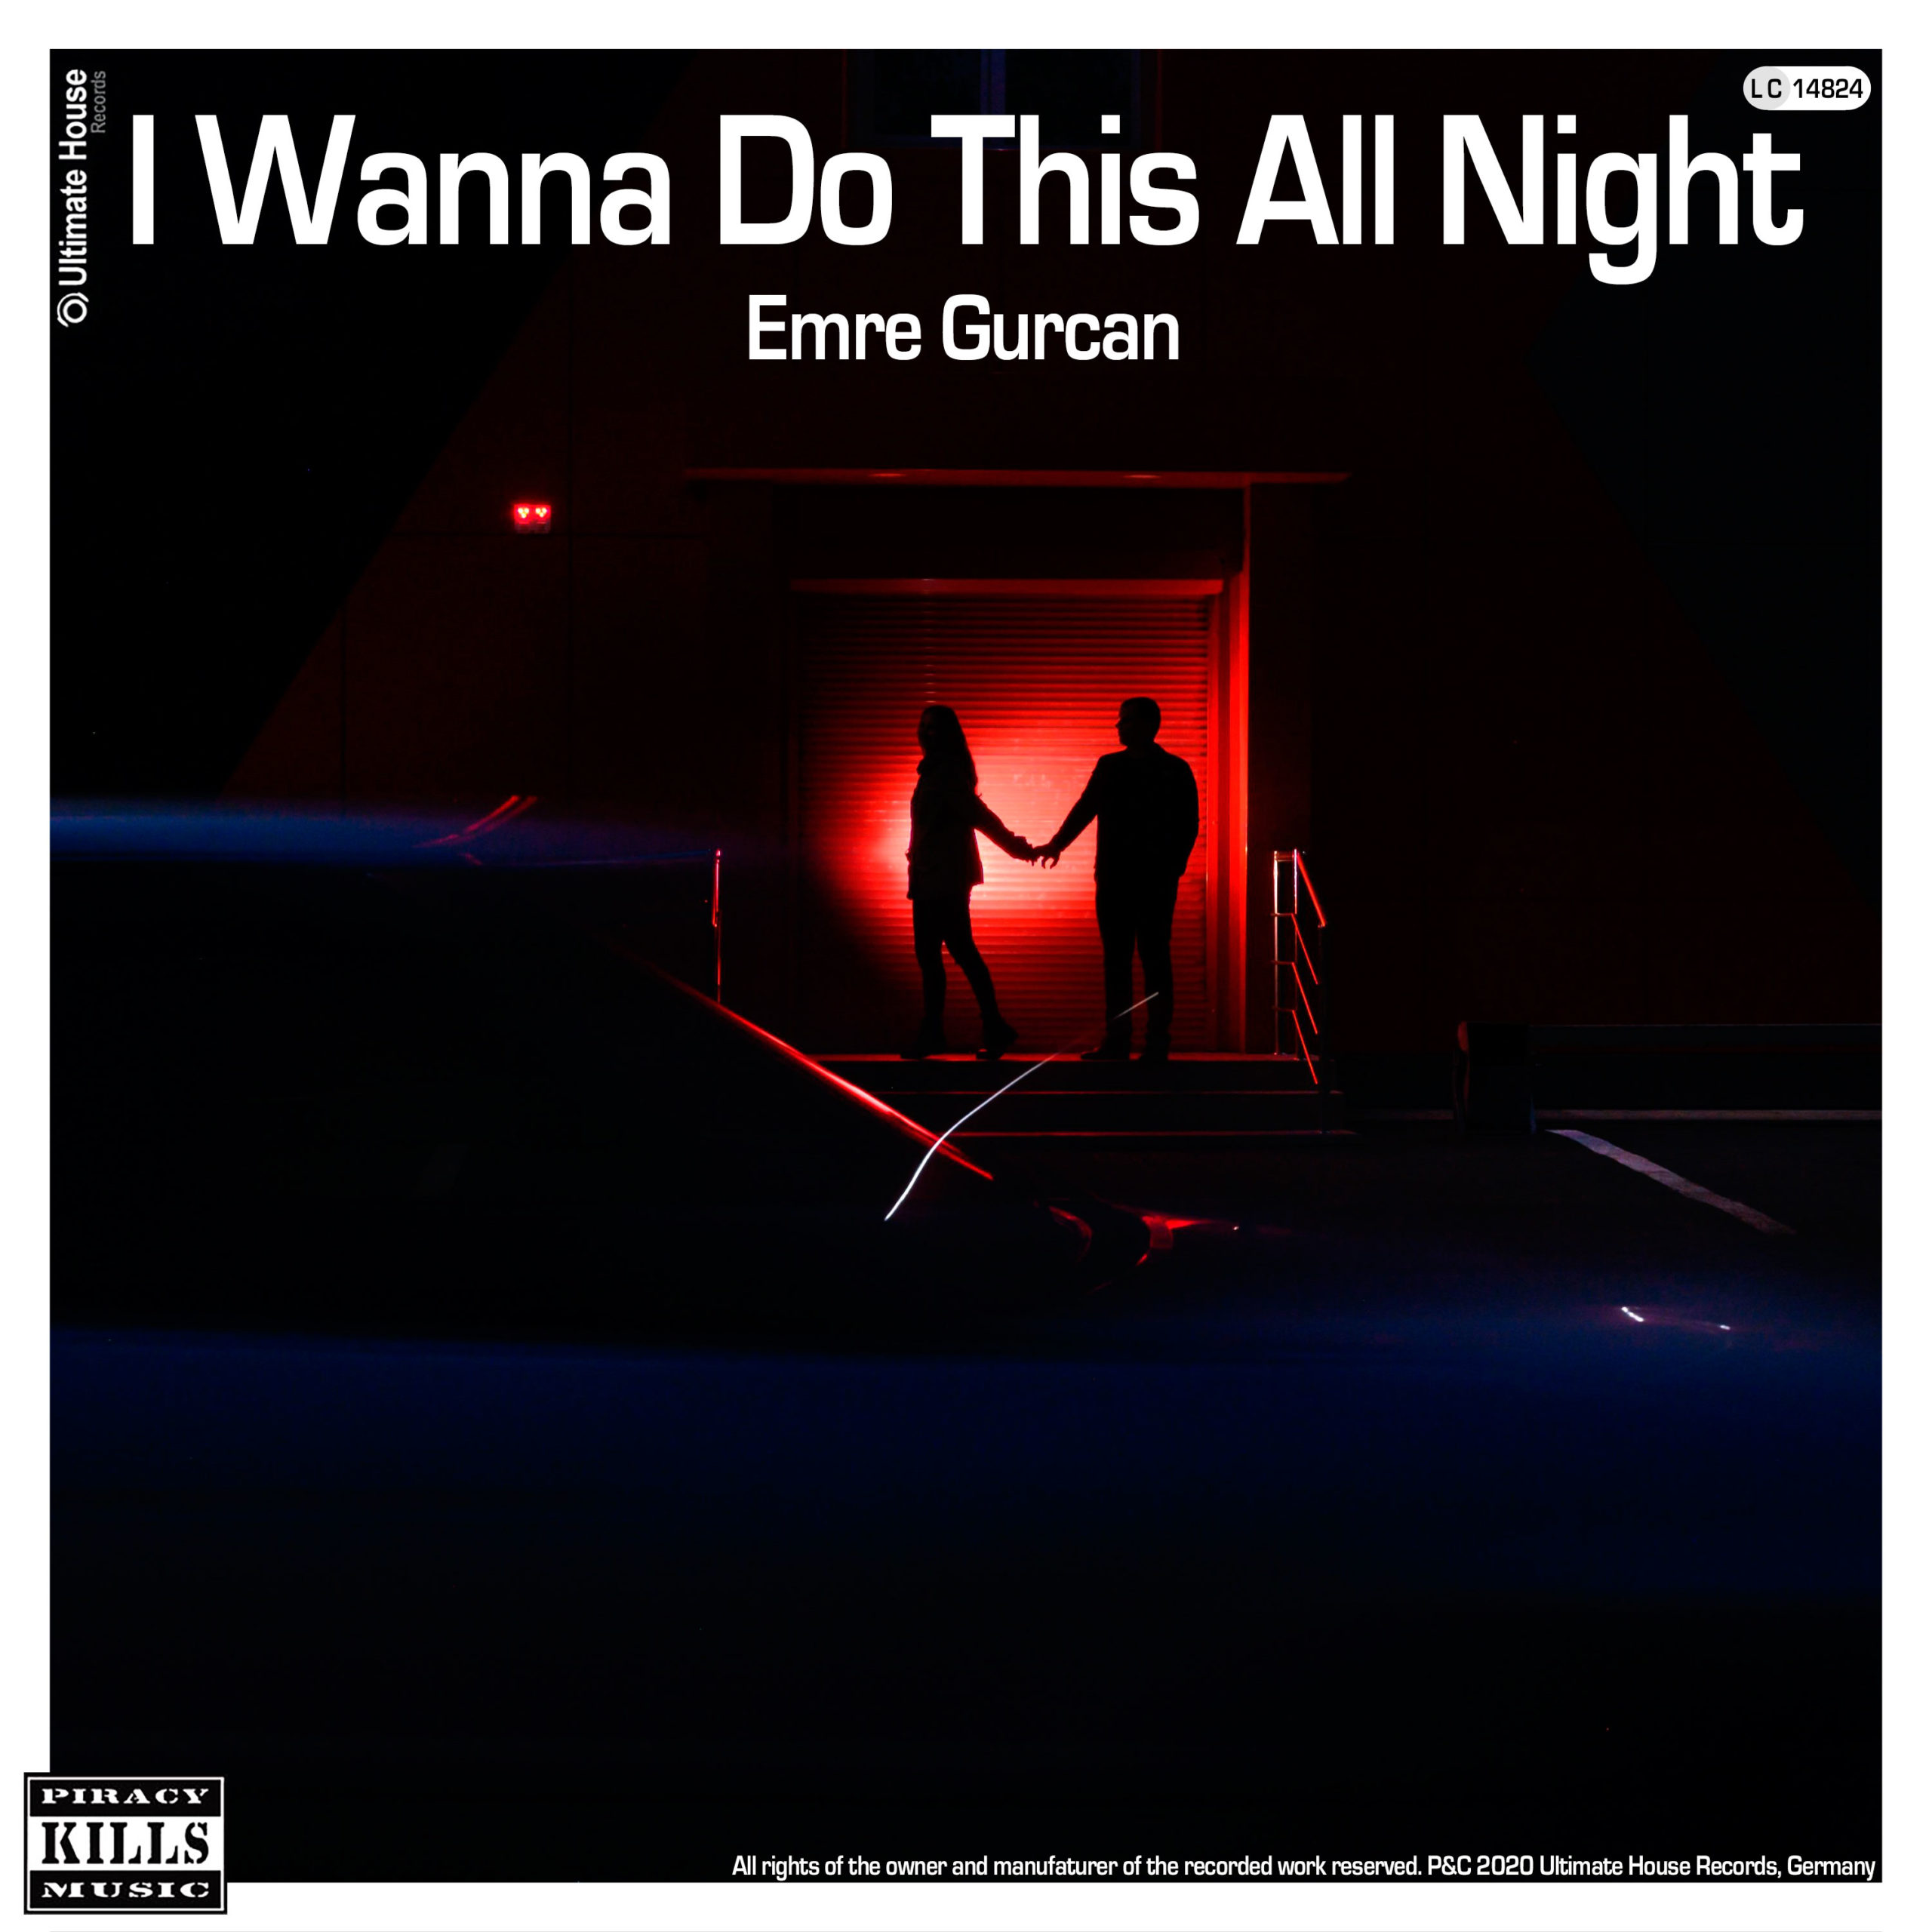 https://www.ultimate-house-records.com/wp-content/uploads/2020/10/145-I_Wanna_Do_This_All_Night-Cover_3000px_web-scaled.jpg